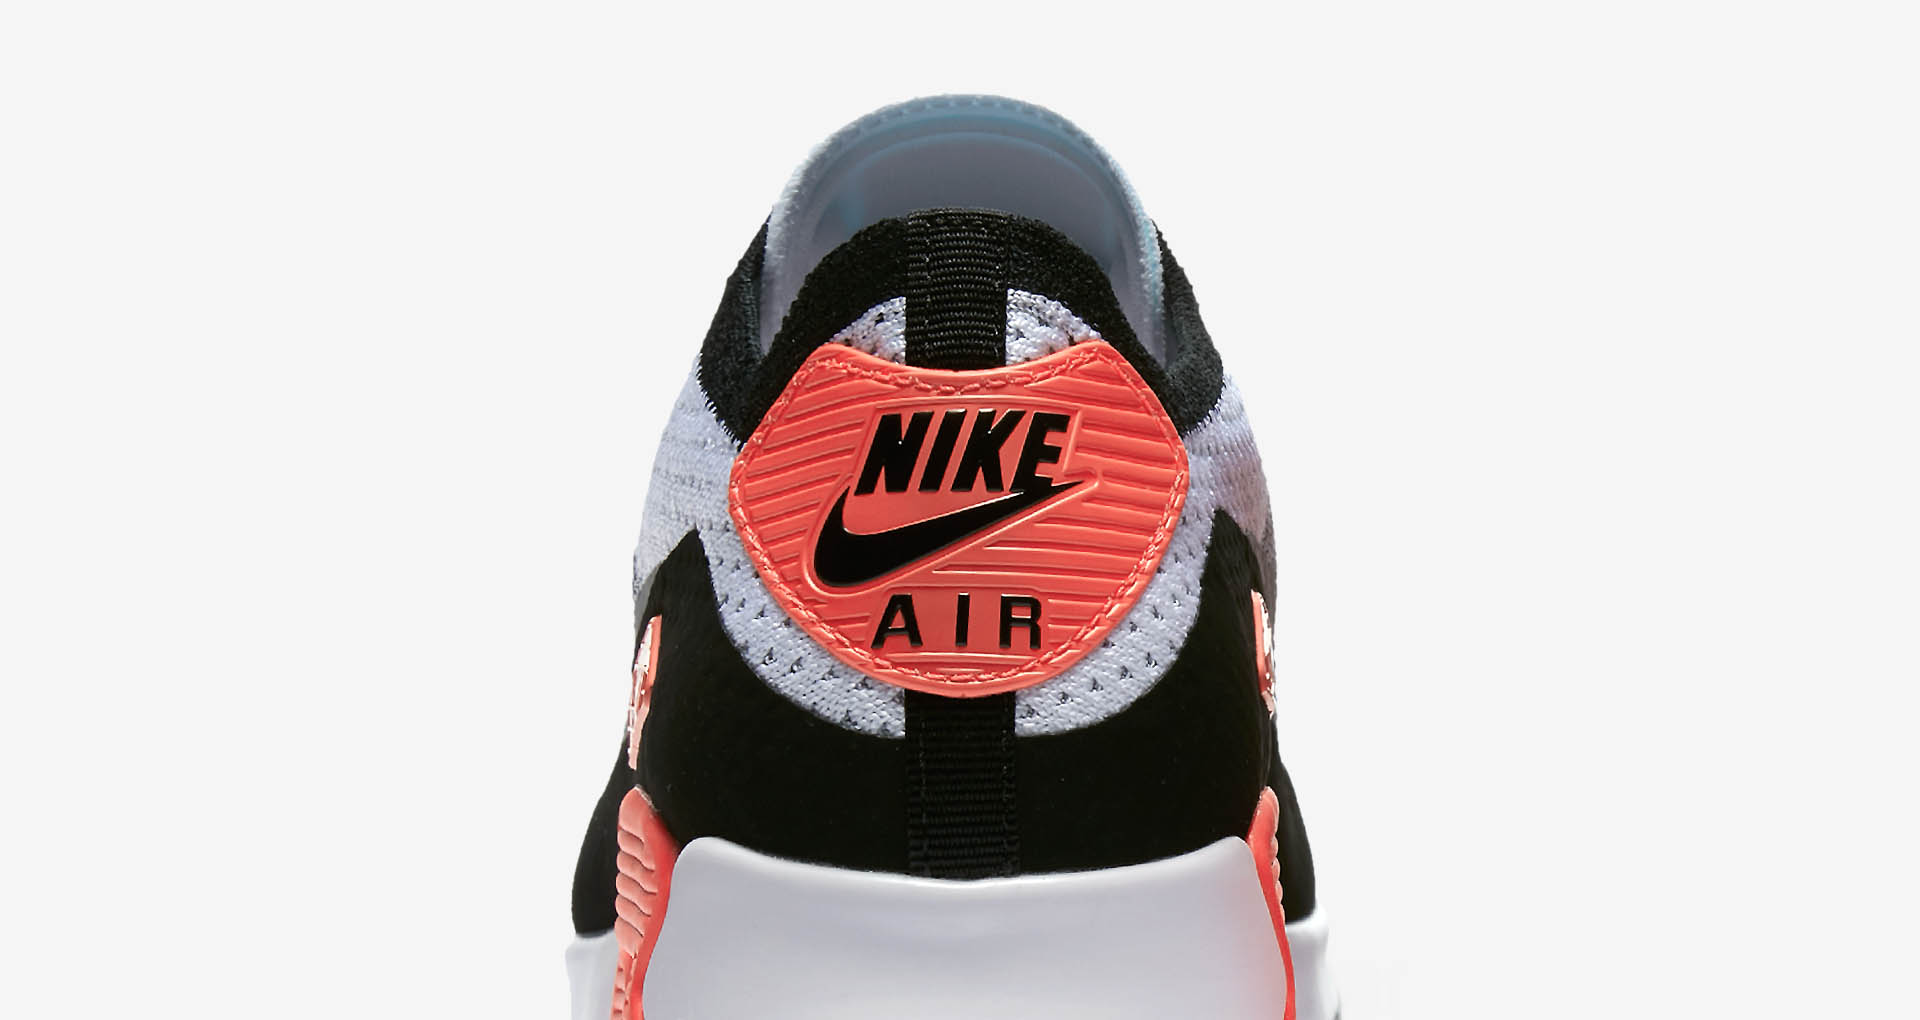 wmns-nike-air-max-90-ultra-2-flyknit-infrared-8